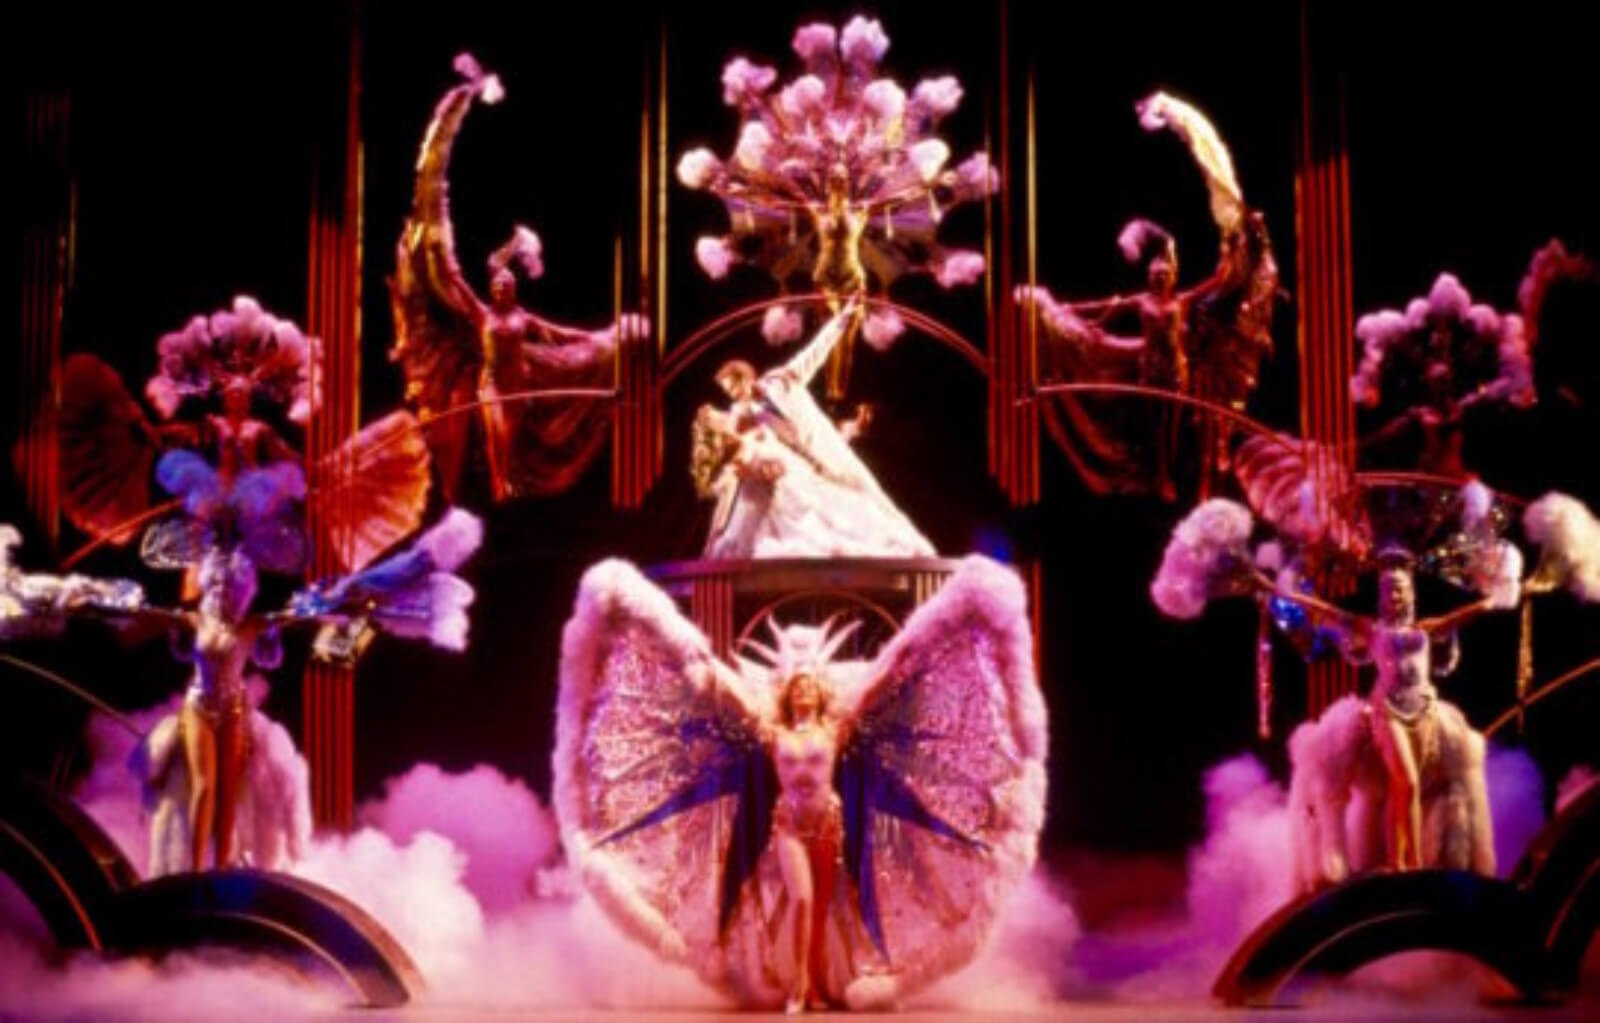 Bobby Child (Harry Groener) gazes at and dips Polly Baker (Jodi Benson) on a platform while surrounded by dancers in elaborate costumes for the Finale